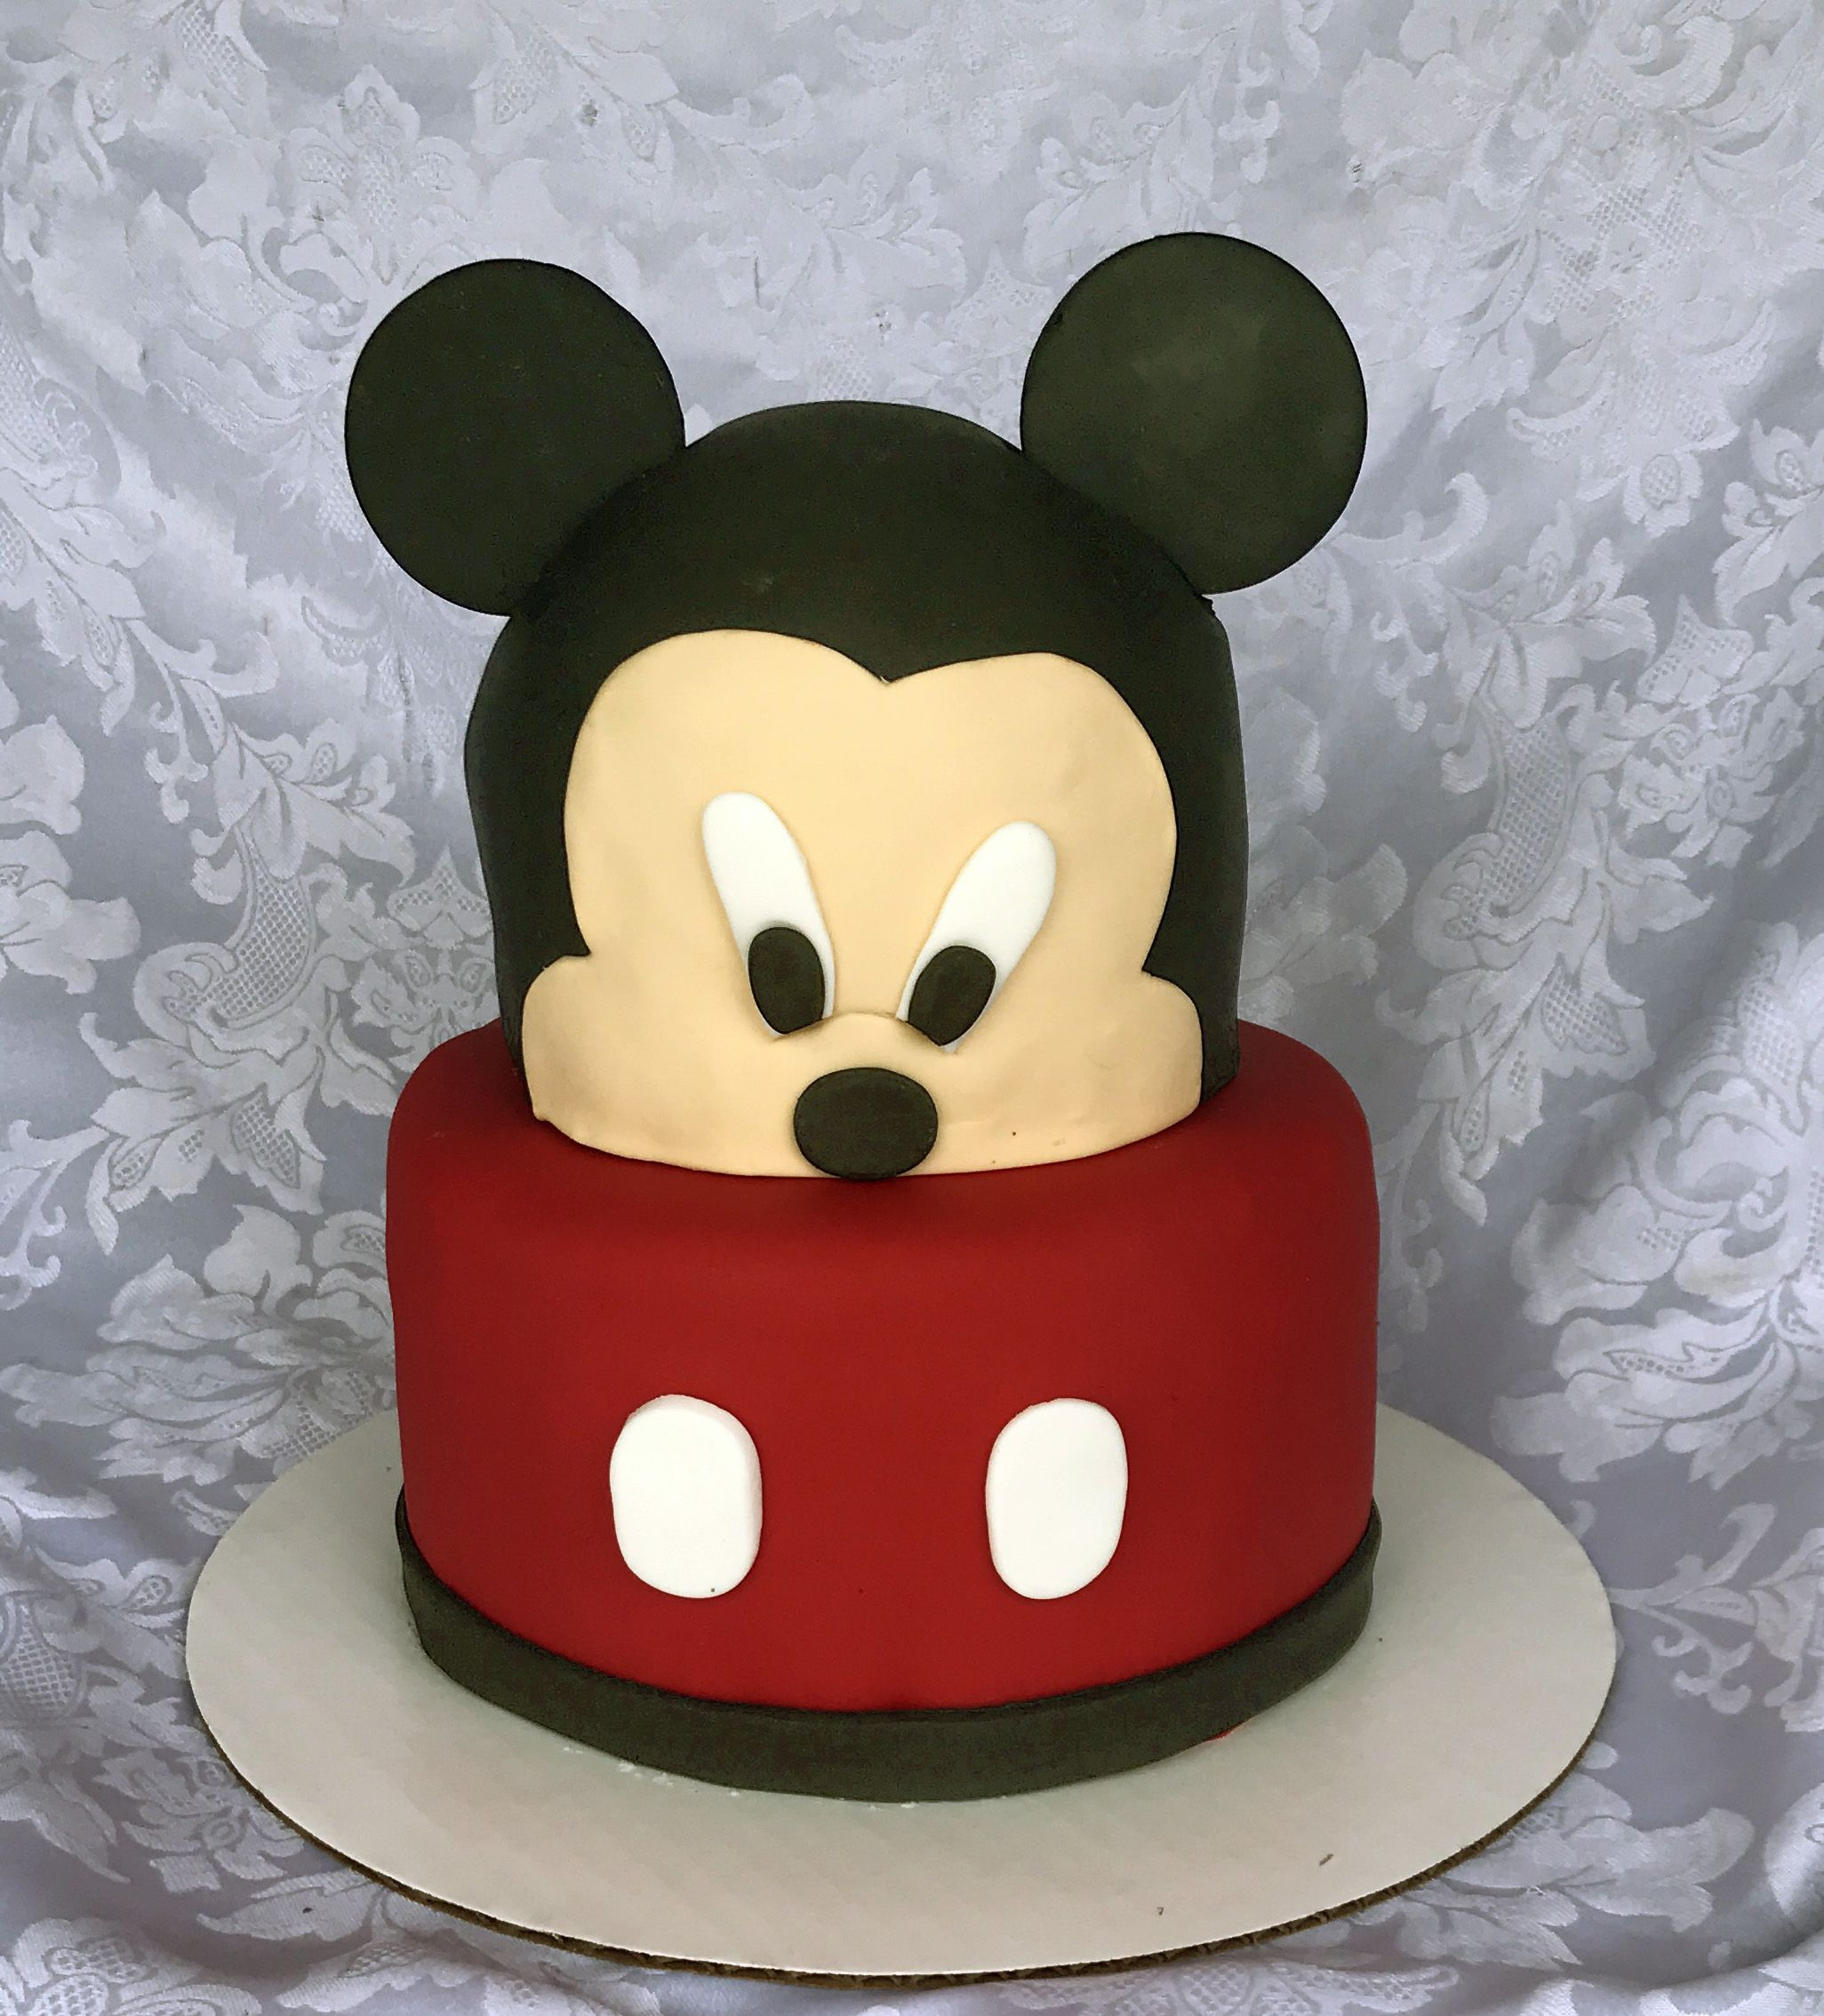 Mickey mouse cake story kay cake designs mickey mouse